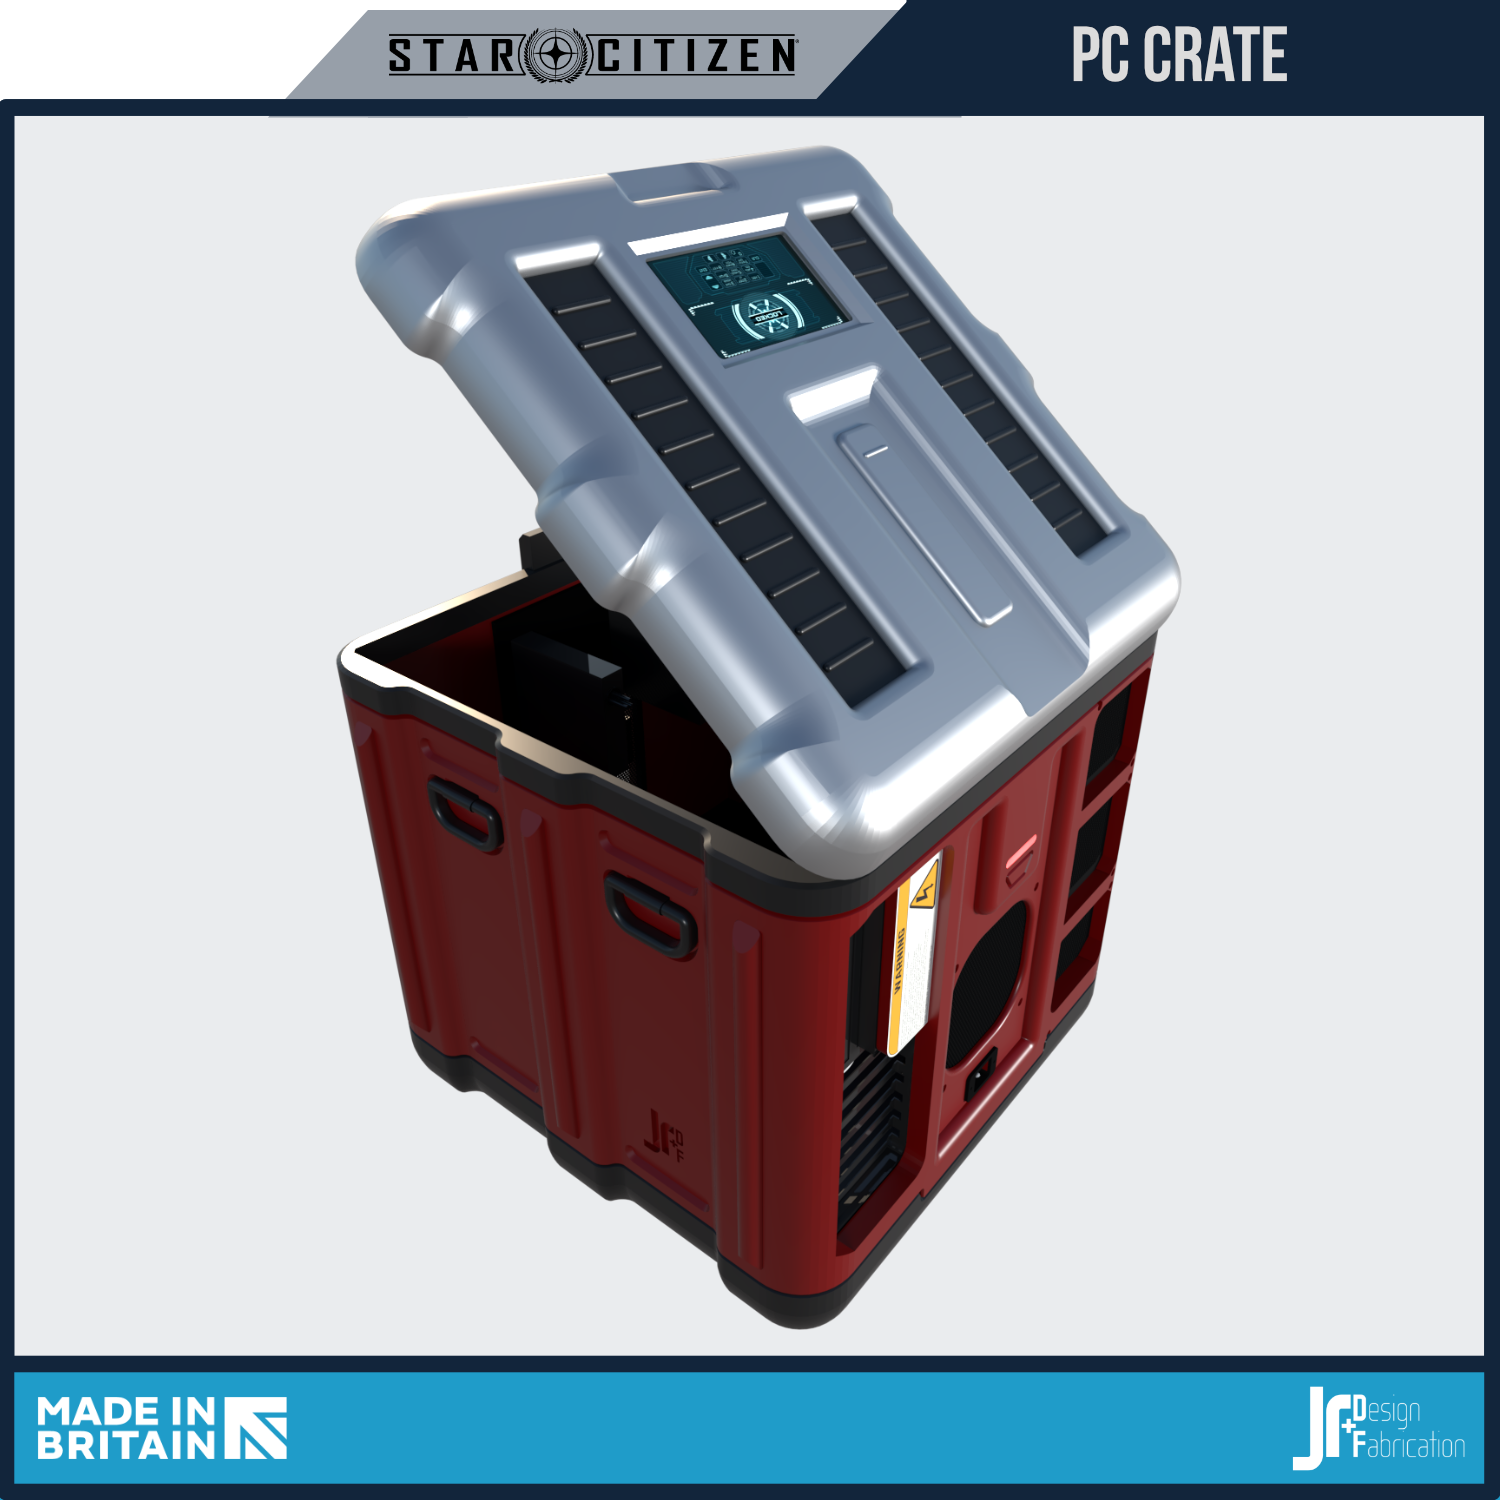 PC Crate image 02.png